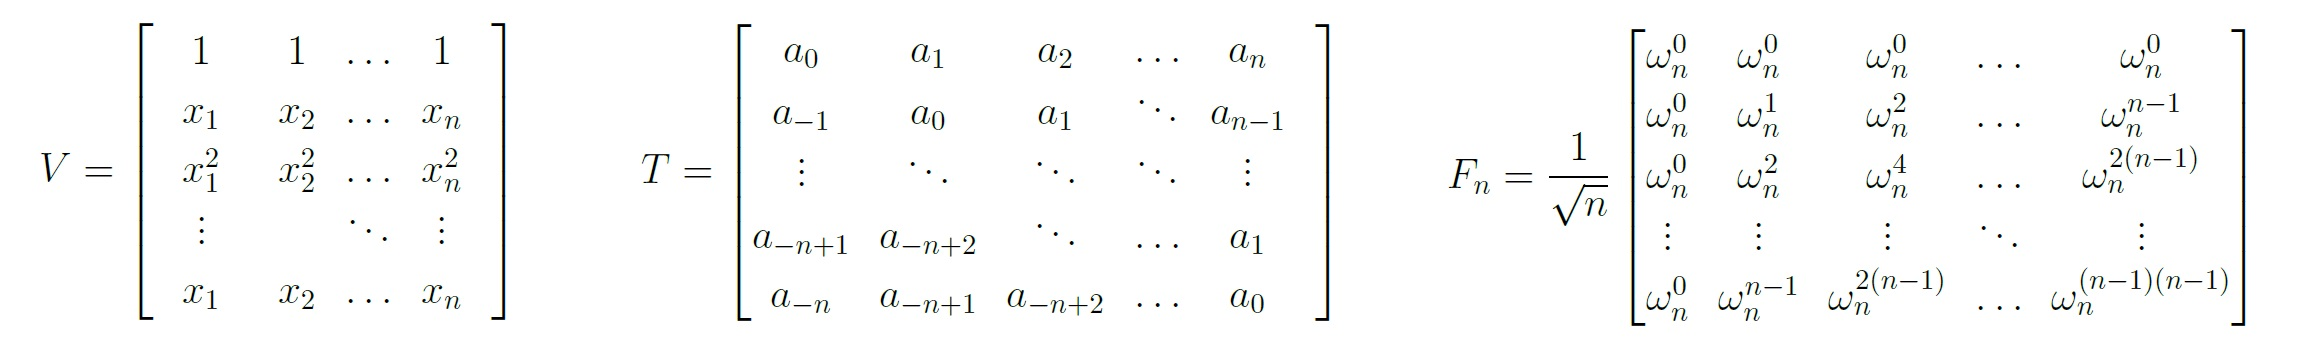 STRUCTURED MATRICES